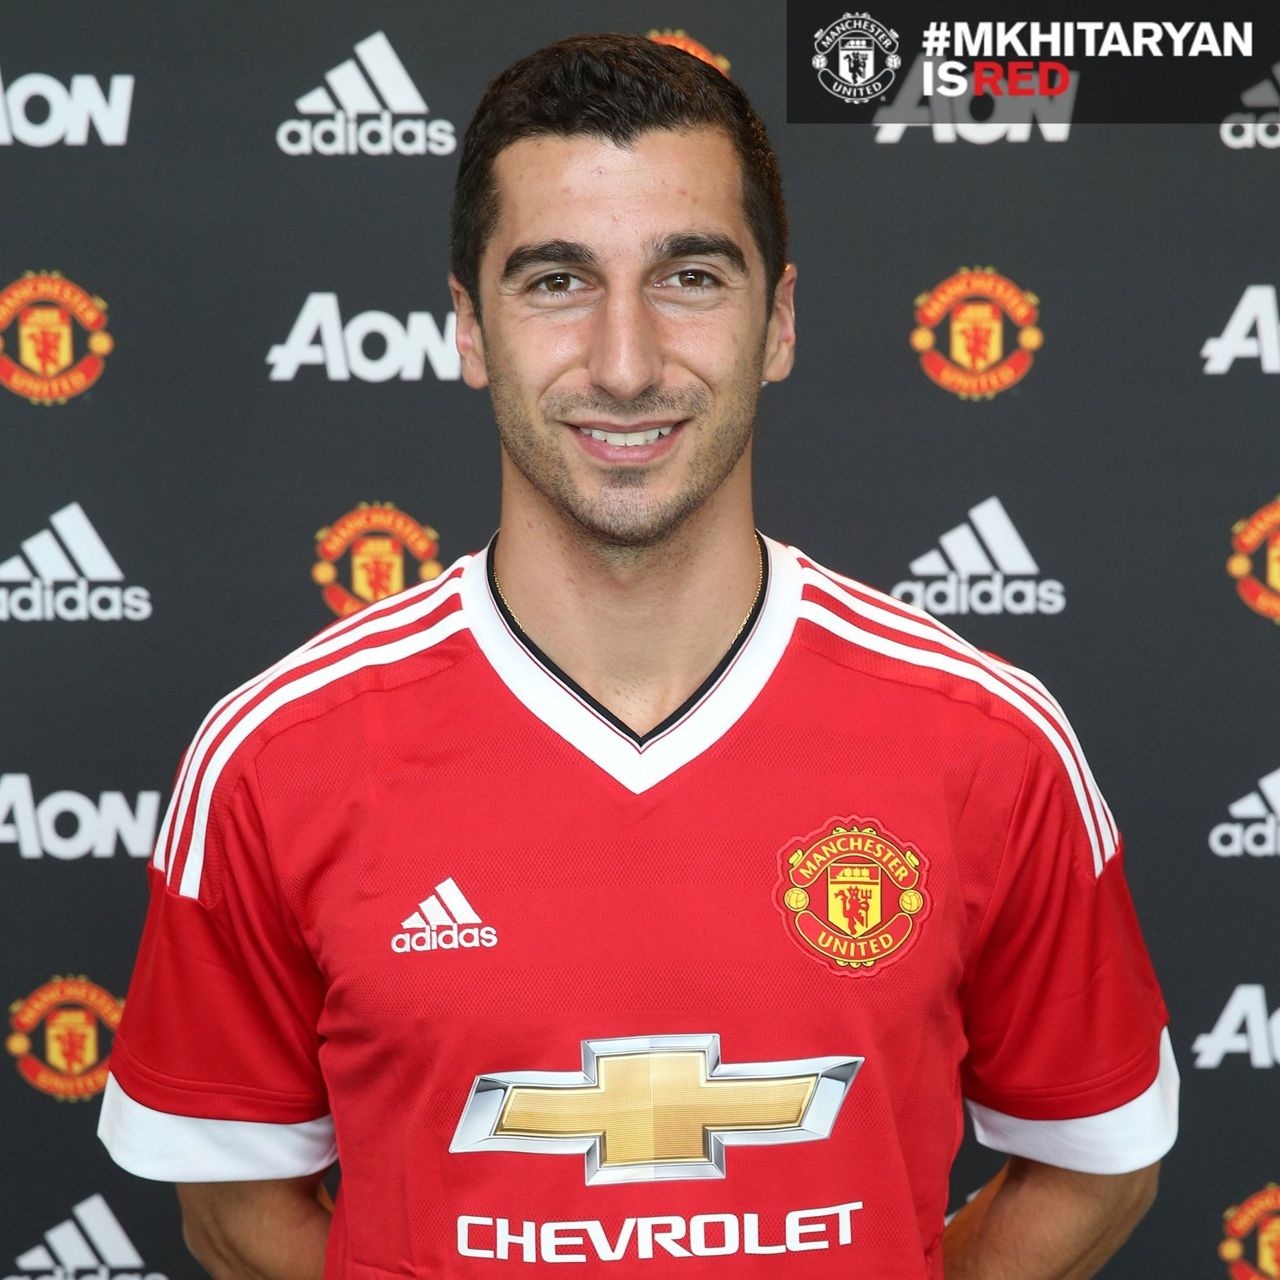 Henrikh Mkhitarayan Signs For Manchester United Official Manchester United Website Manchester United Manchester United Players Manchester United Football